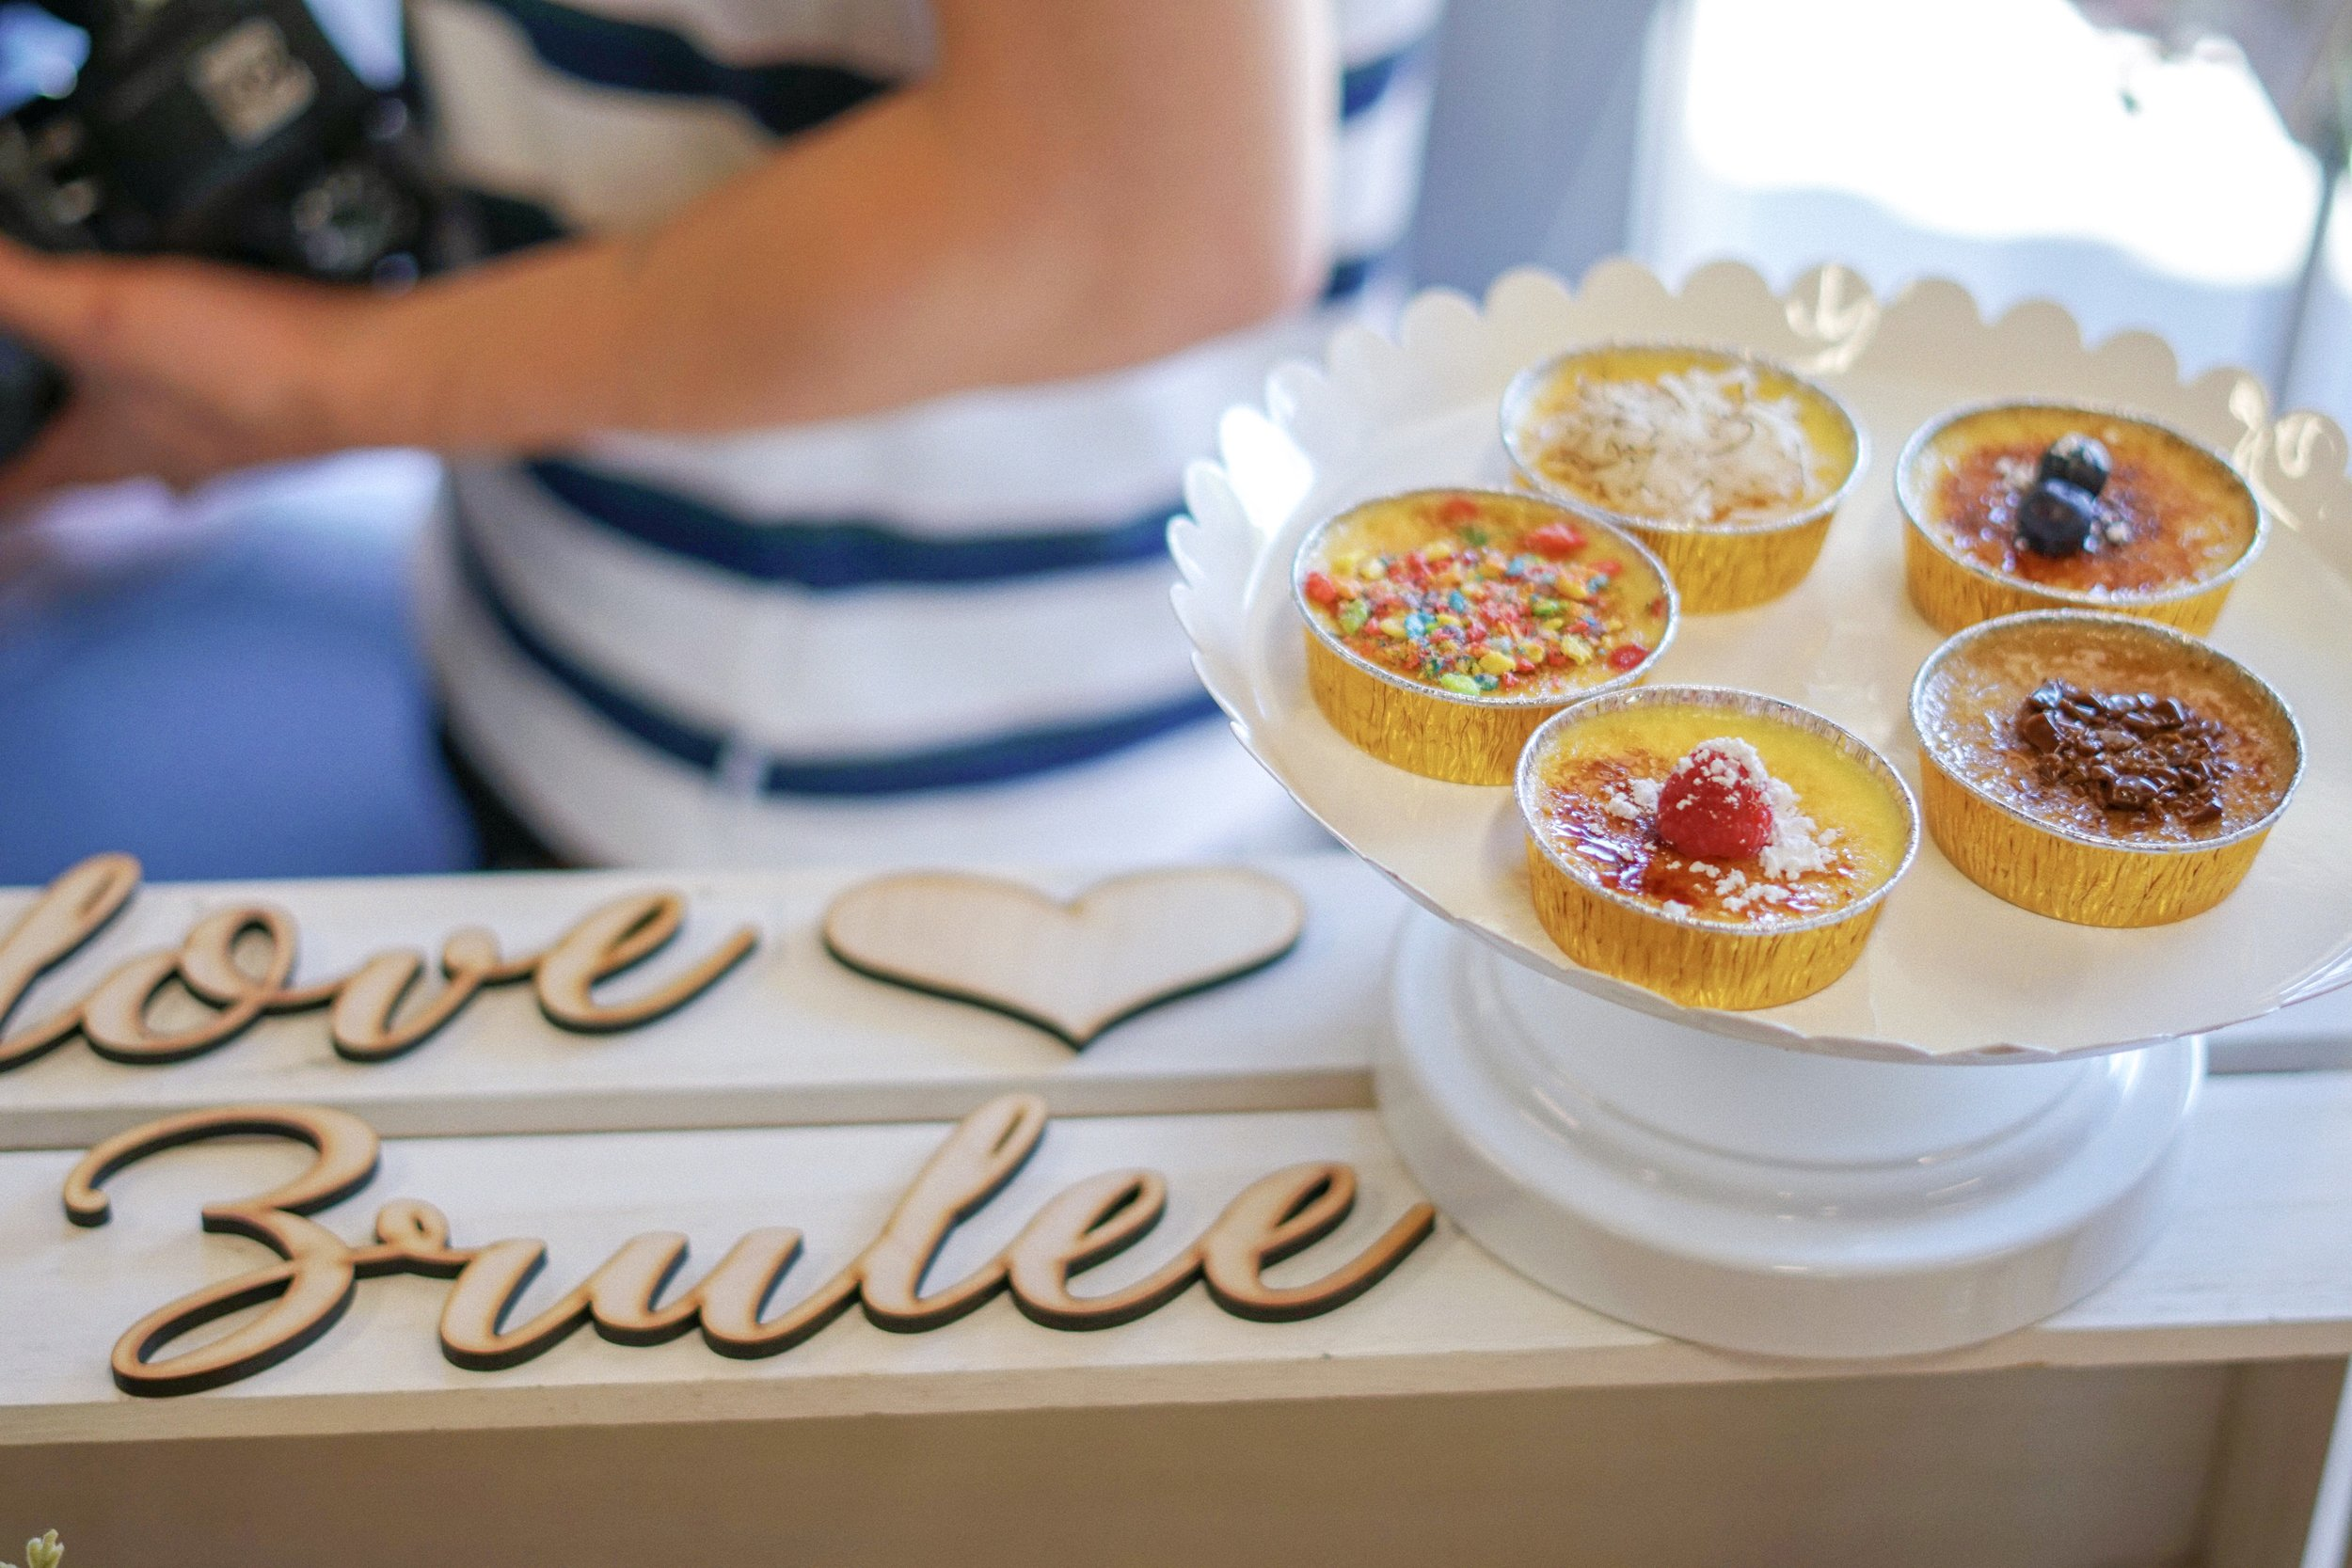 I Love Brulee by @_foodsie